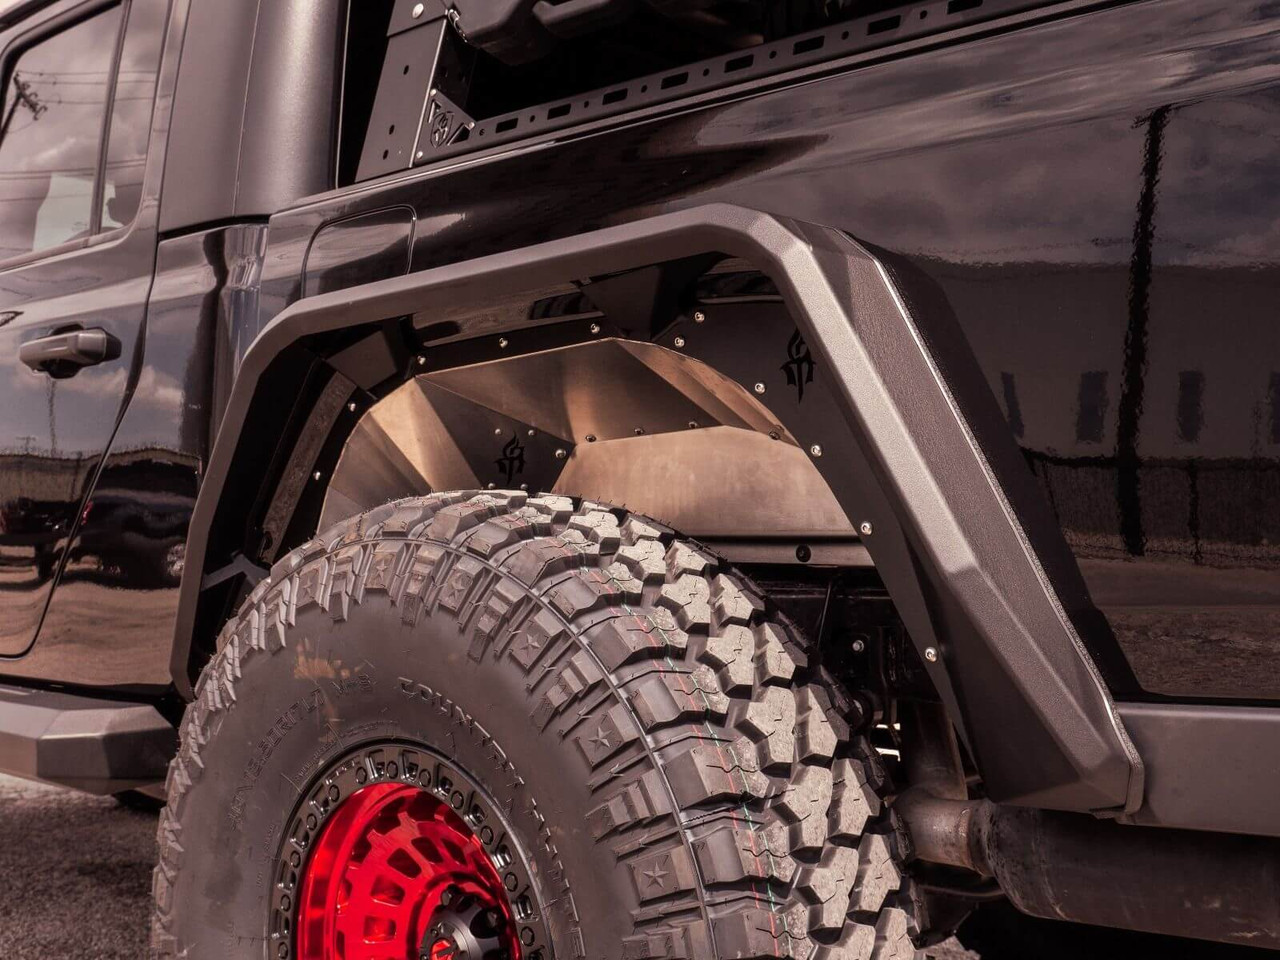 Road Armor Stealth Rear Fender Flare For 2020 Jeep Gladiator 520afr0b Rear Fenders Fenders Road Armor 4x4 Parts Off Road Parts Rd Off Road